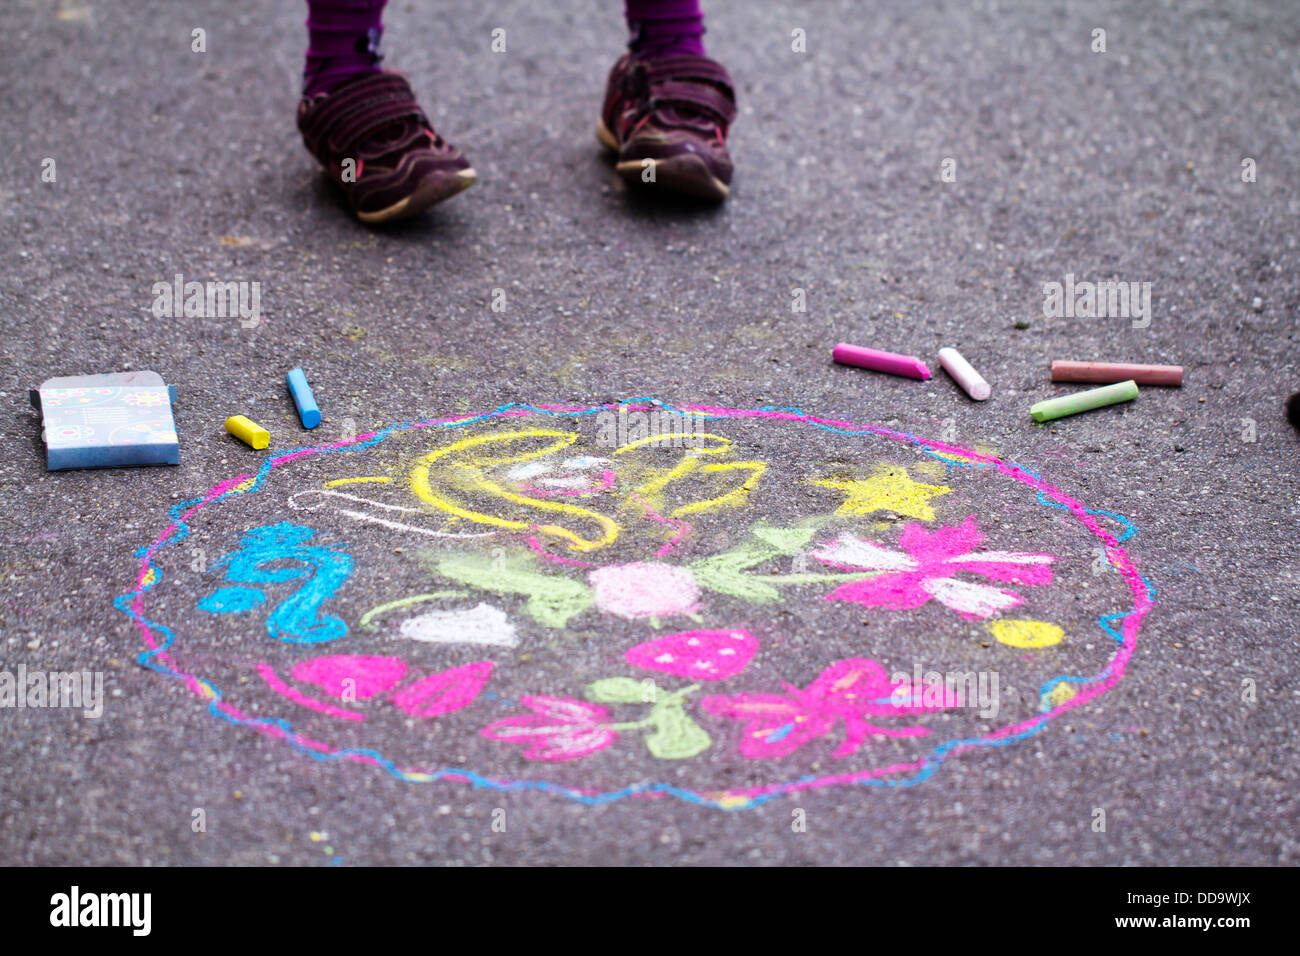 Germany, Girl drawing on street - Stock Image